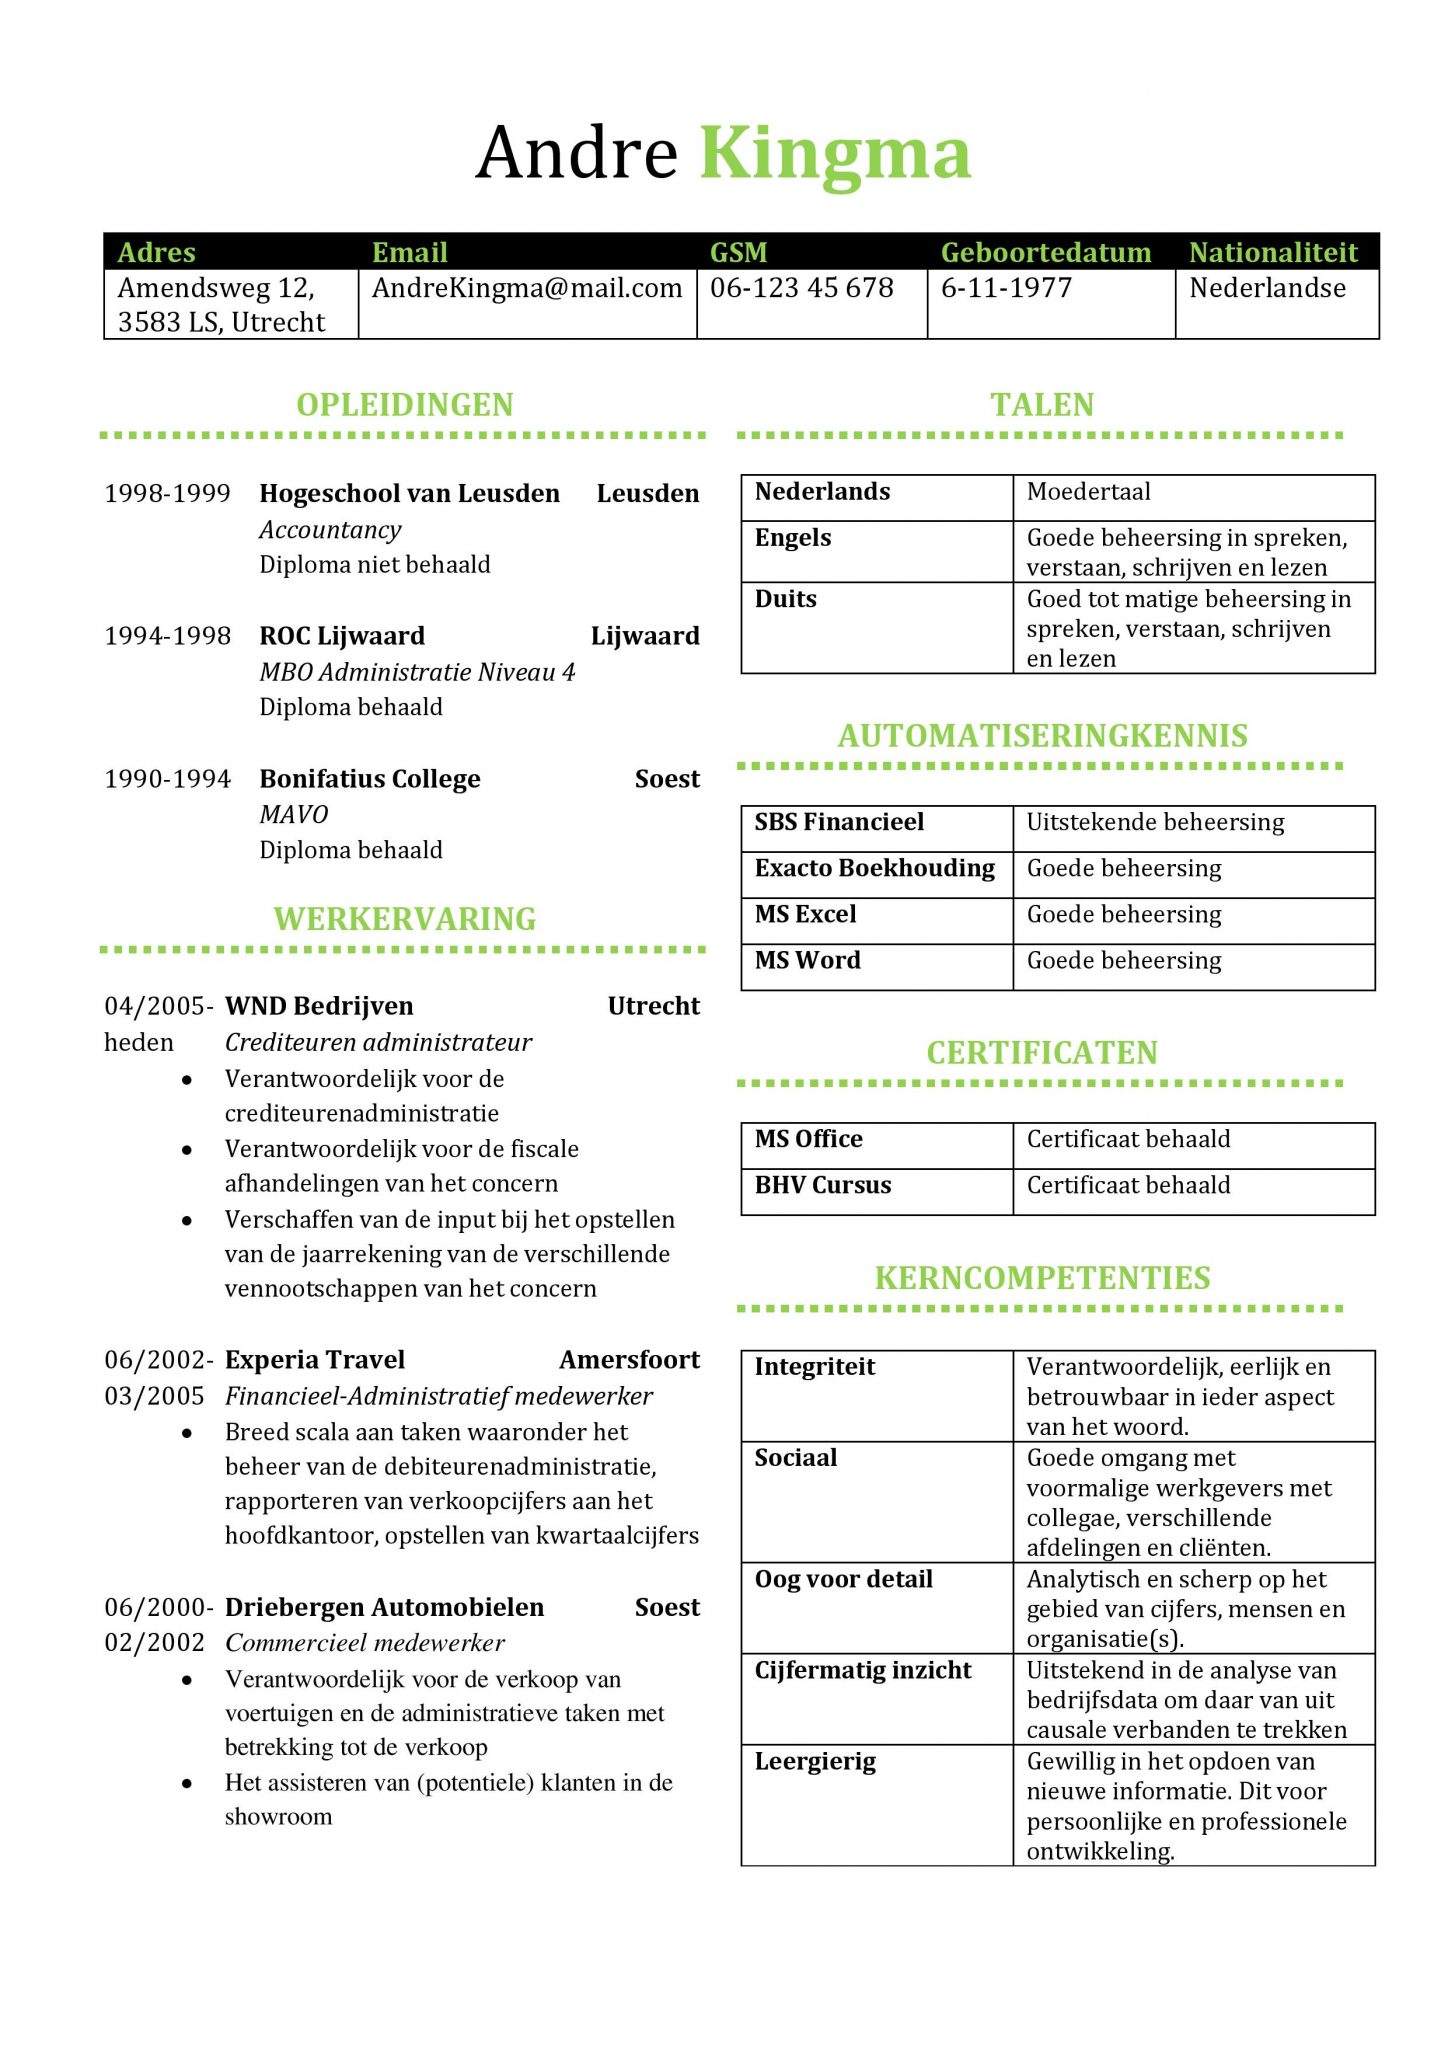 Gratis cv sjabloon voorbeelden cv templates sjablonen in word unieke cv sjabloon gratis te downloaden en bewerken in microsoft word yelopaper Image collections